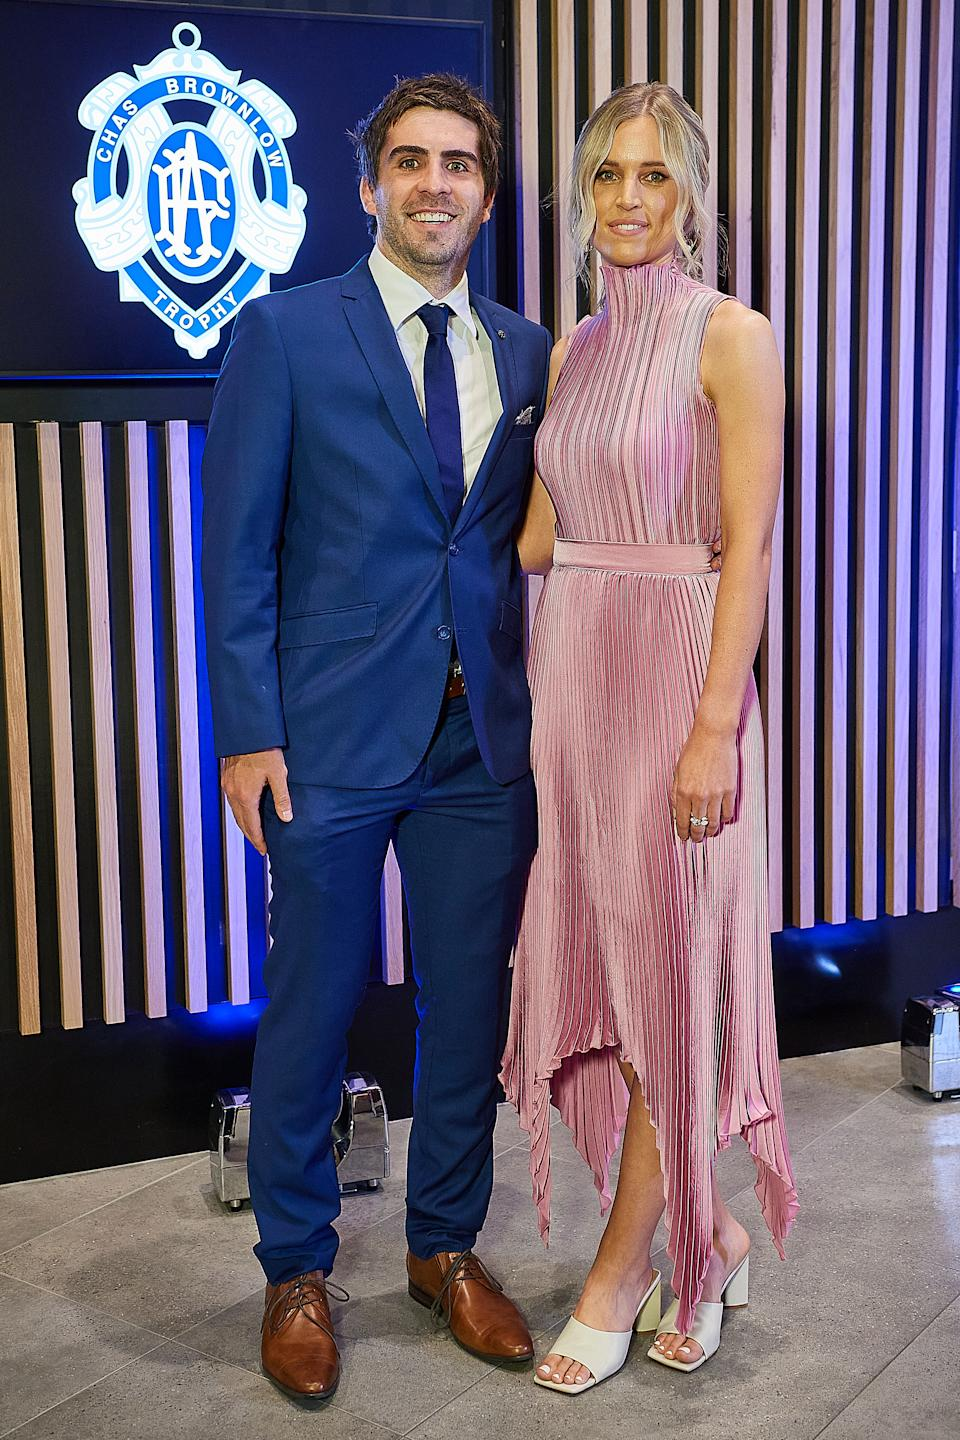 Andrew Gaff and partner Emma Van Woerden pose for a photo during the 2020 Brownlow Medal Count at Optus Stadium on October 18, 2020 in Perth, Australia.